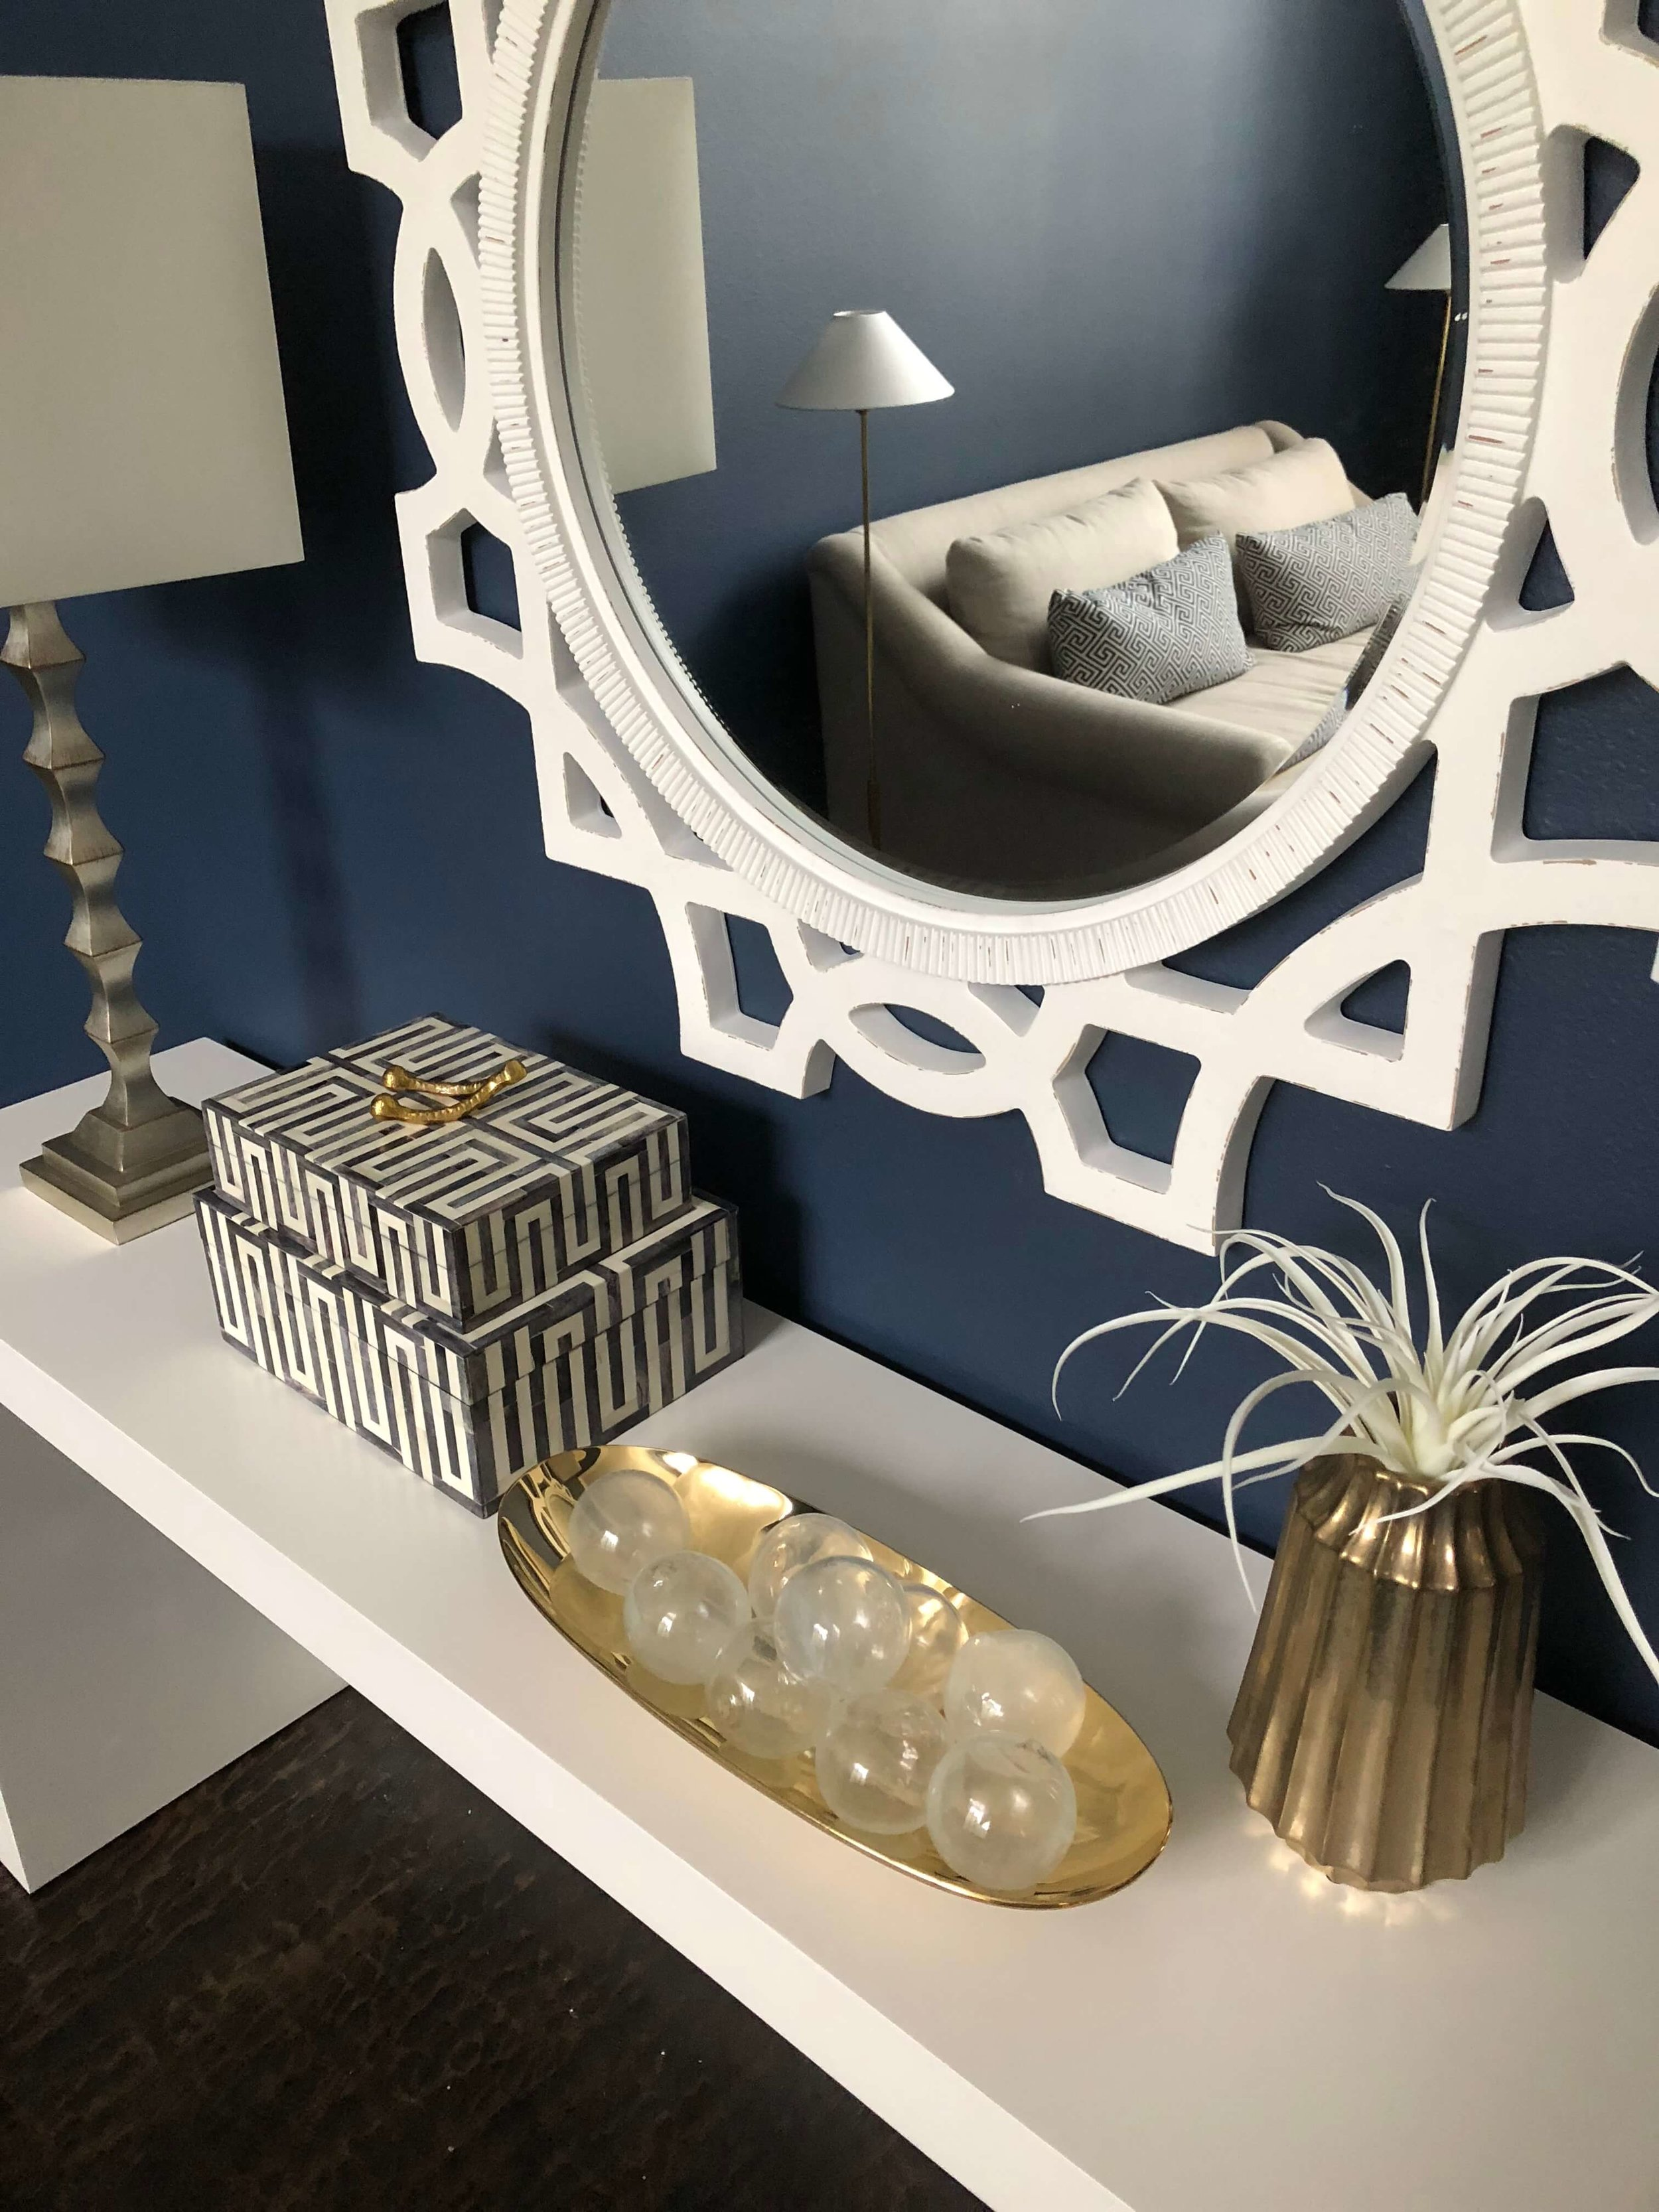 Navy blue walls with white console and mirror |  Carla Aston, Designer  #homedecor #navywalls #entryhall #foyer  #console